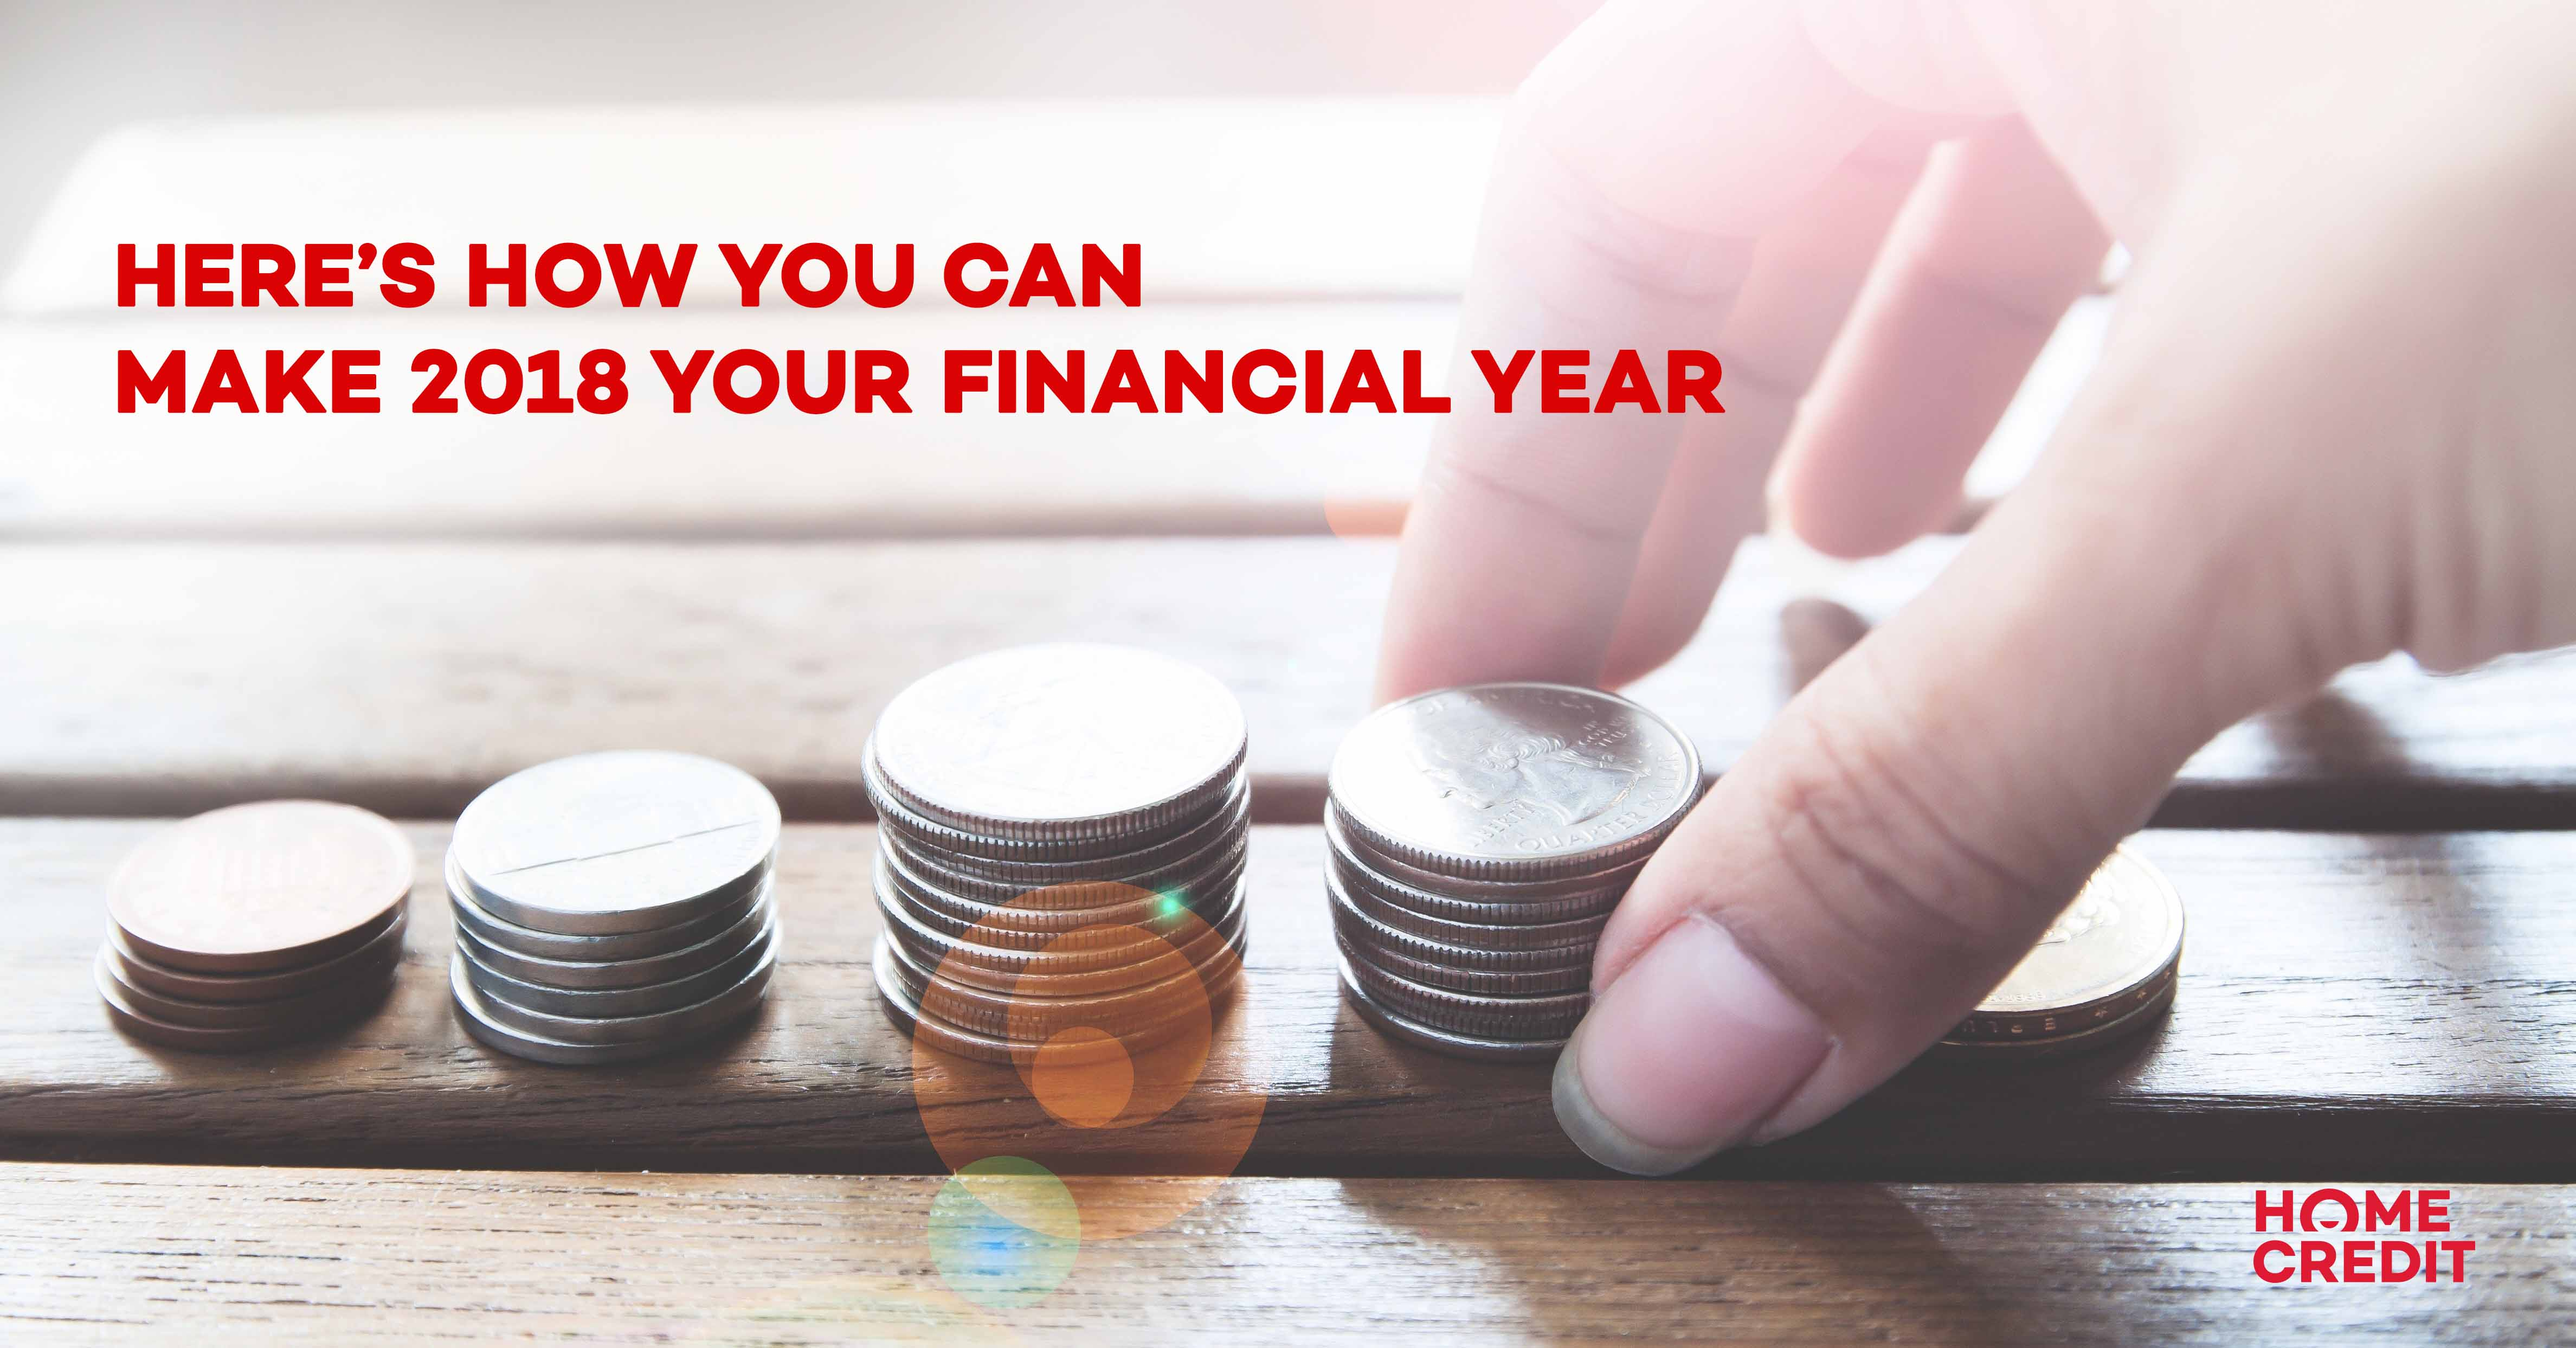 Here's how you can make 2018 your Financial Year